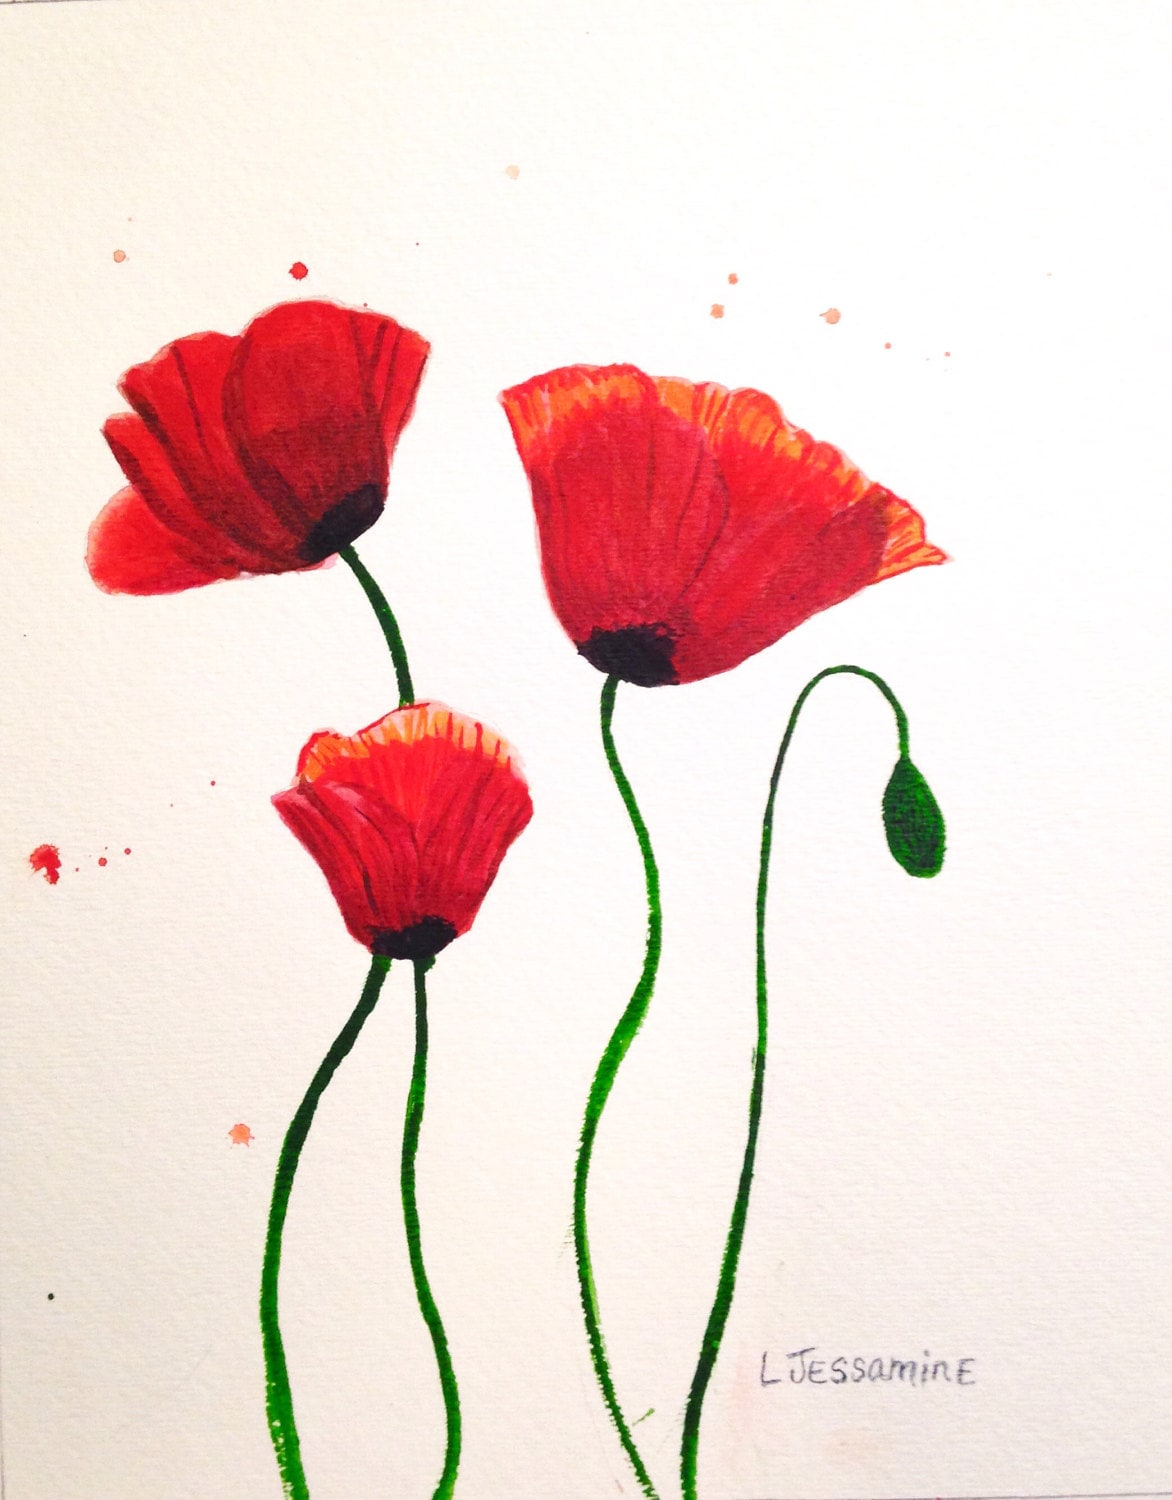 Red poppy original watercolor painting flower painting red flowers red poppy original watercolor painting flower painting red flowers wall art red and white poppy flower poppy flowers 8x10 mightylinksfo